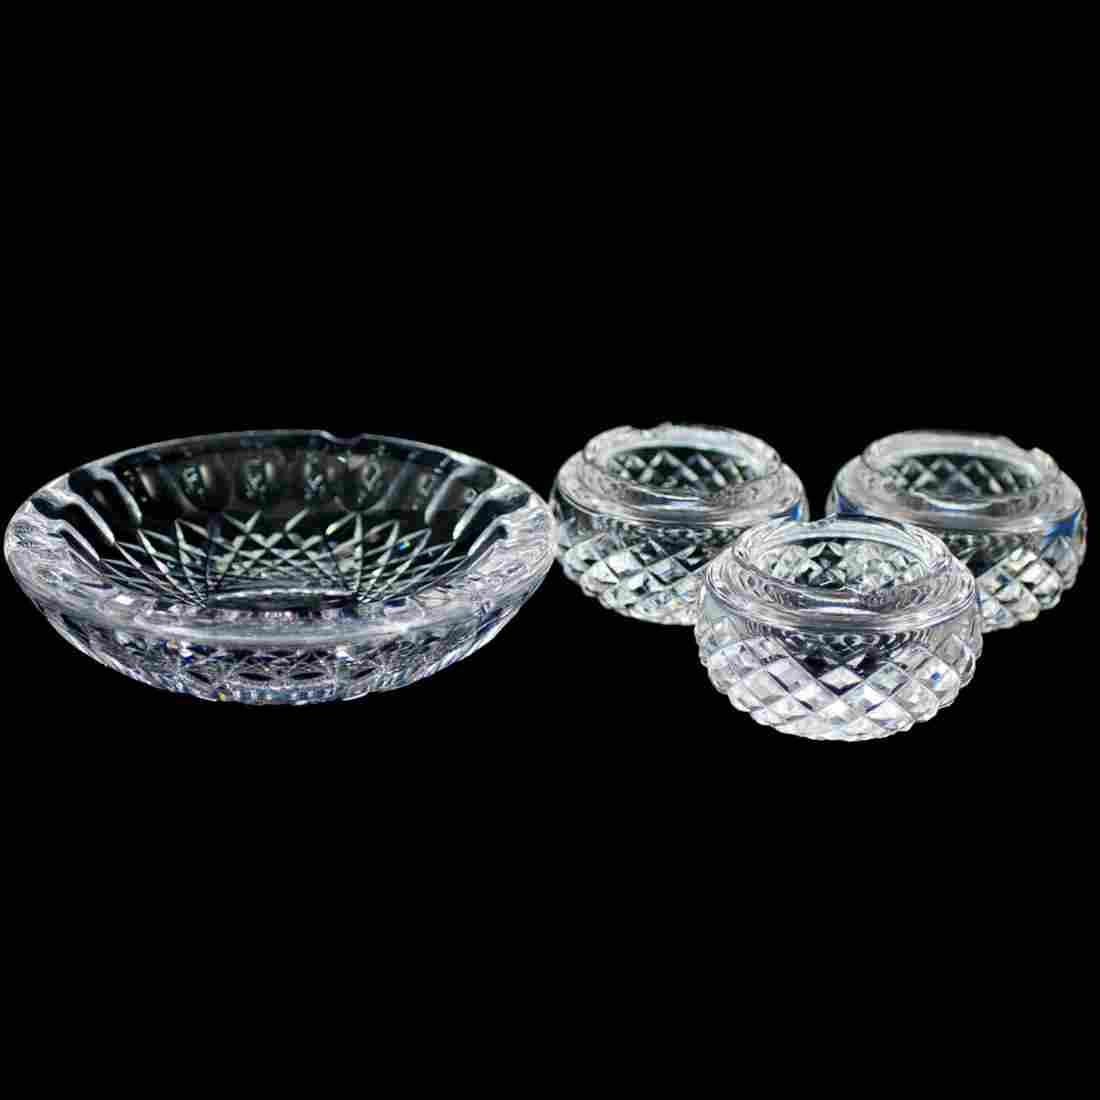 4 Pc) Waterford Crystal Ashtray